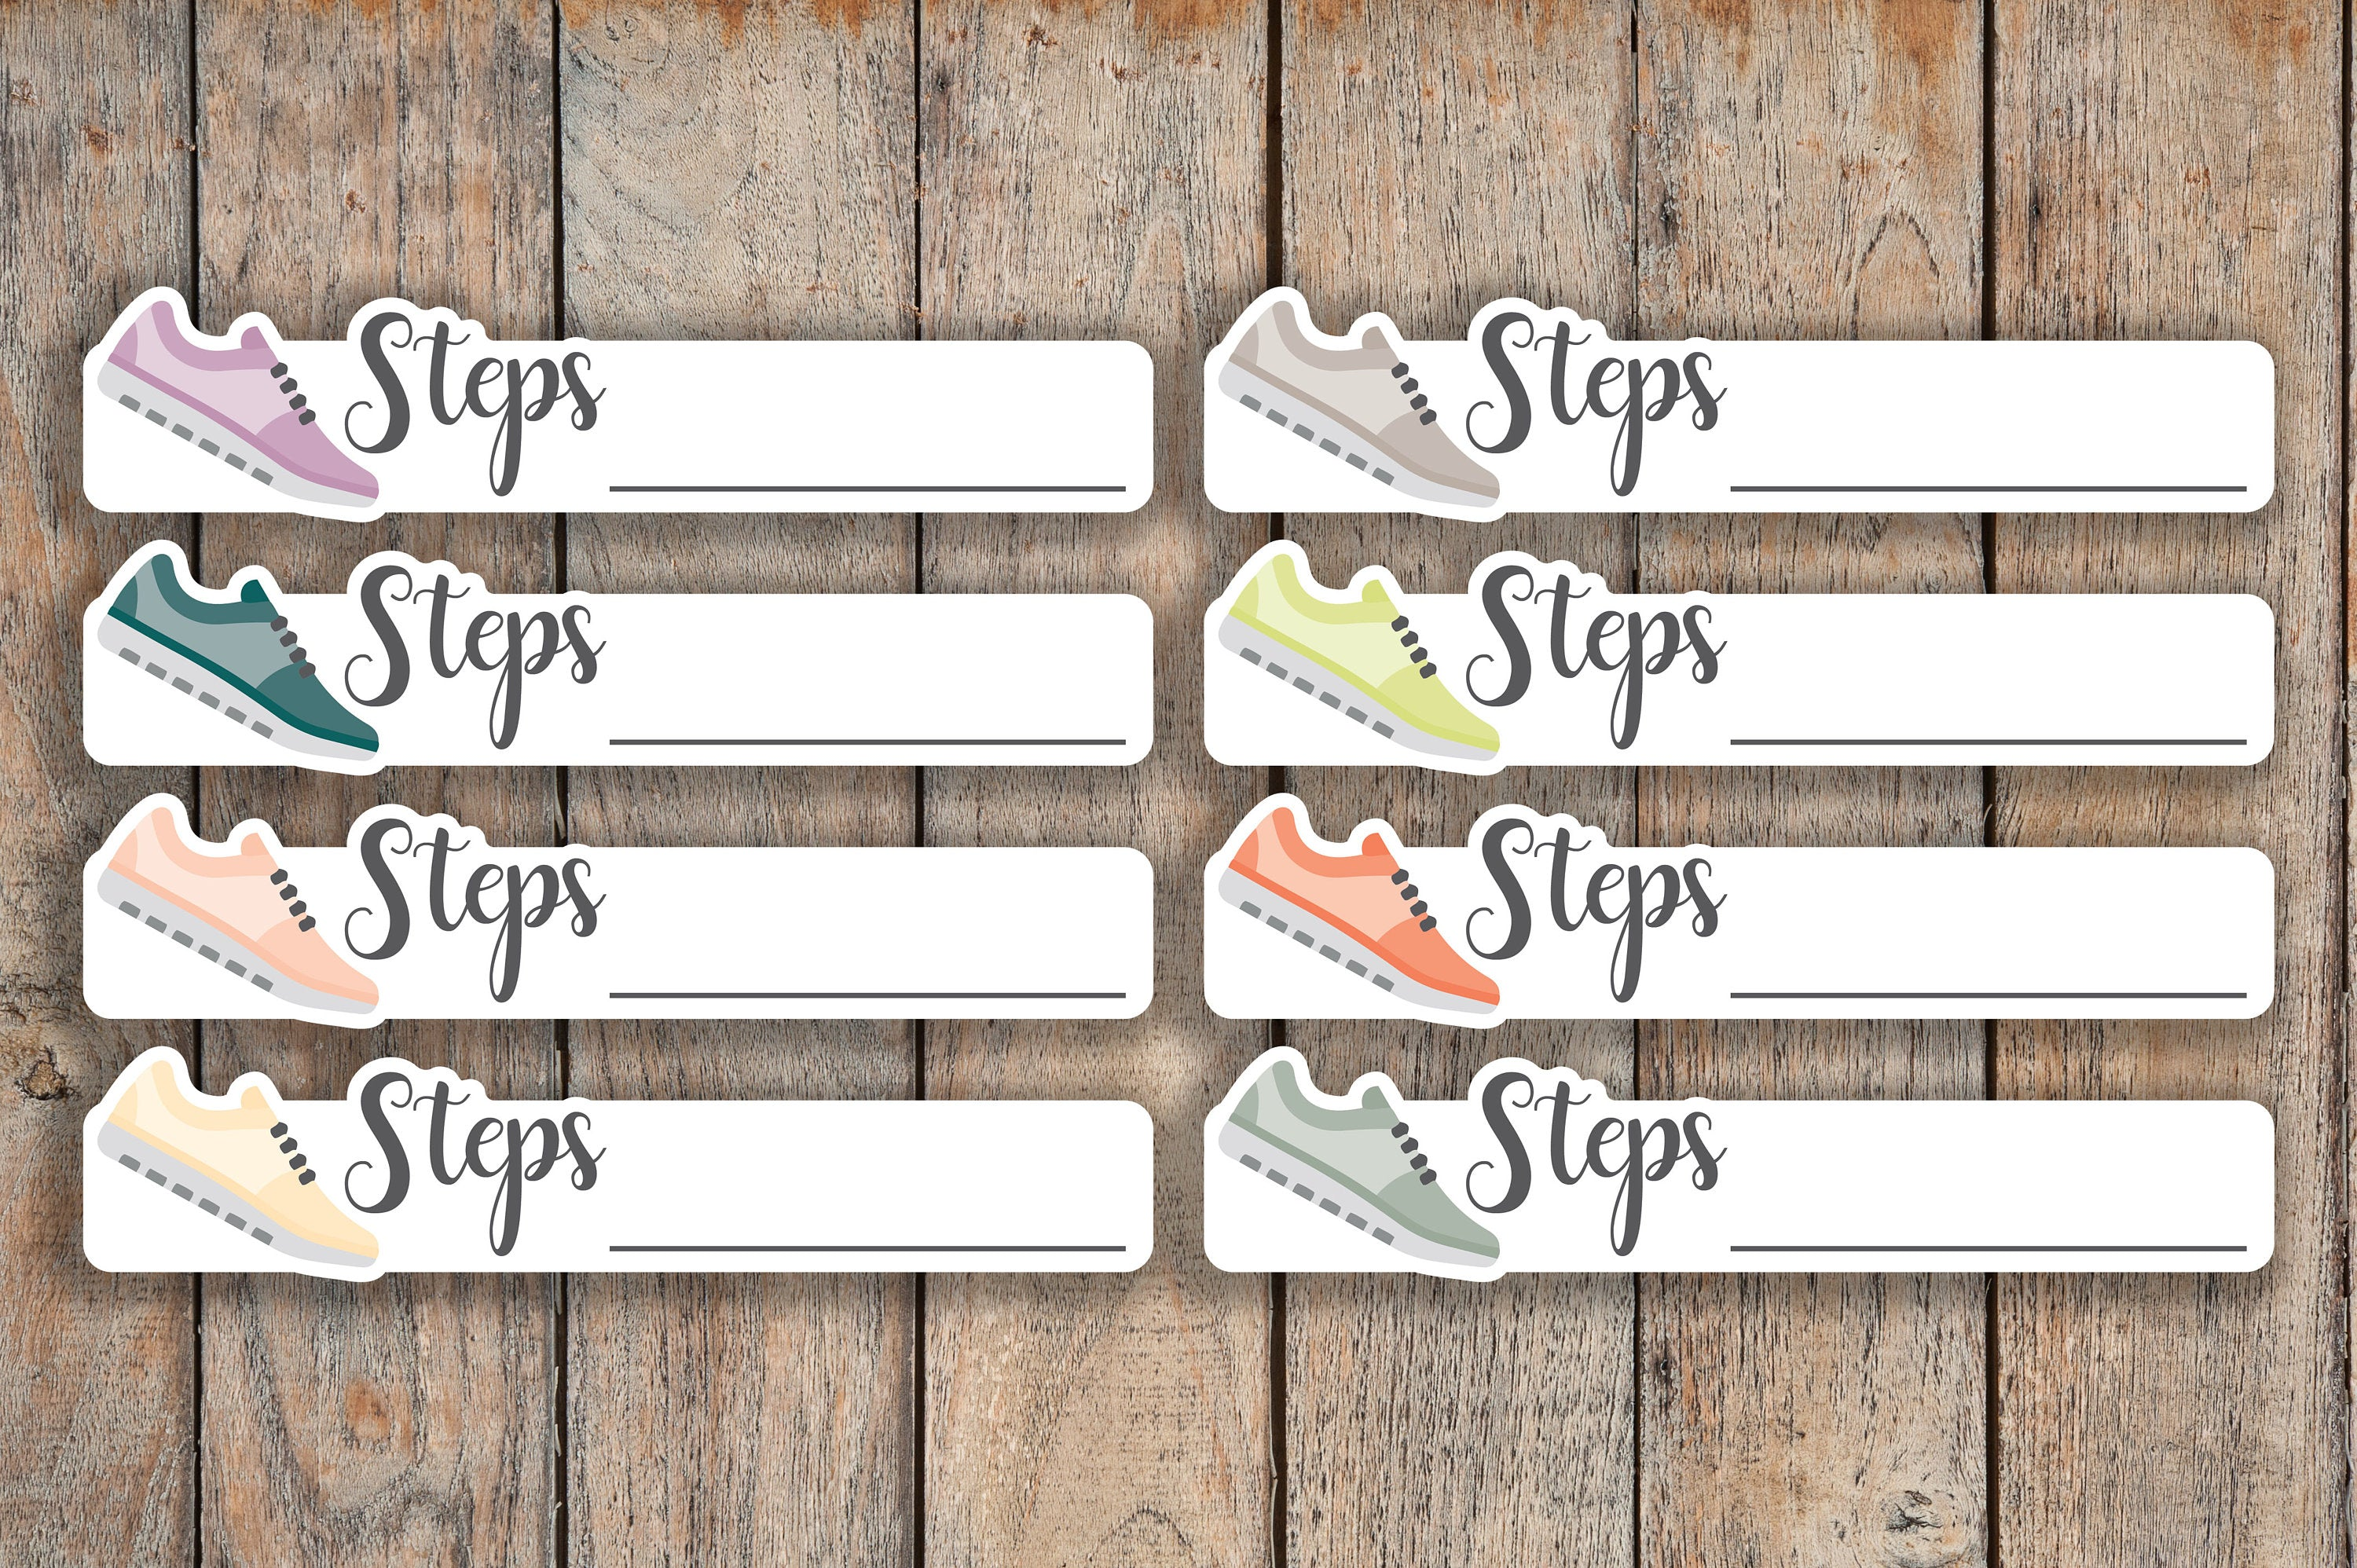 30 Fitness, Running Shoe, Today's Workout, & Step Icon Planner Stickers for 2018 inkWELL Press Planners IWP-Q241